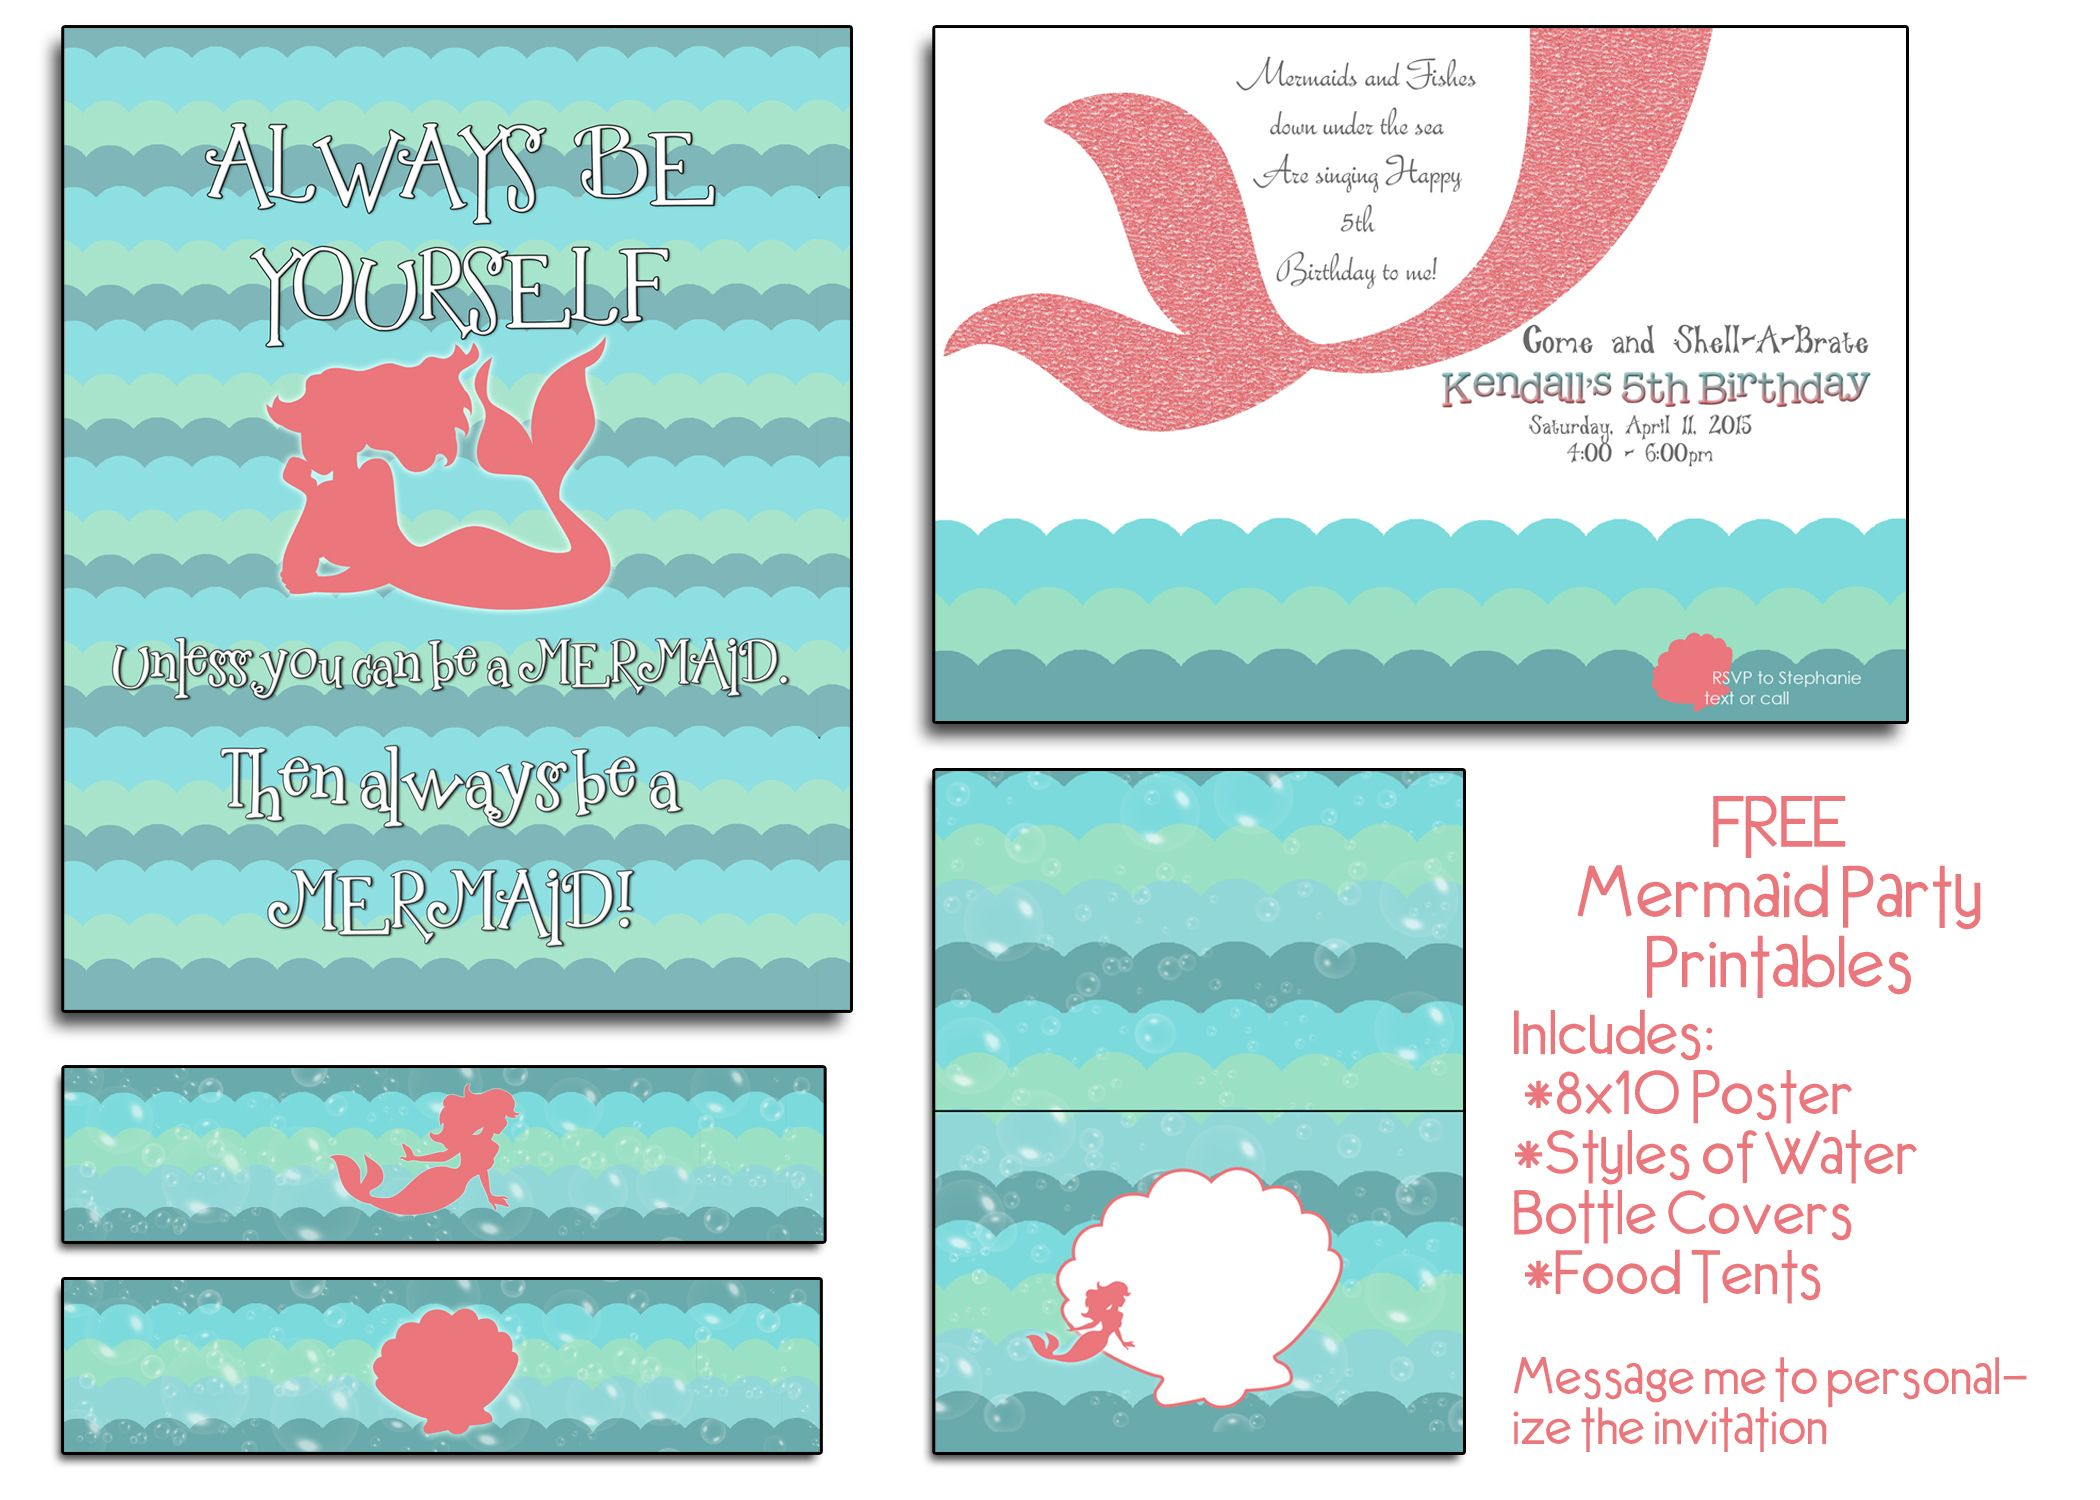 photo relating to Free Printable Mermaid Template referred to as Free of charge Mermaid Occasion Printables